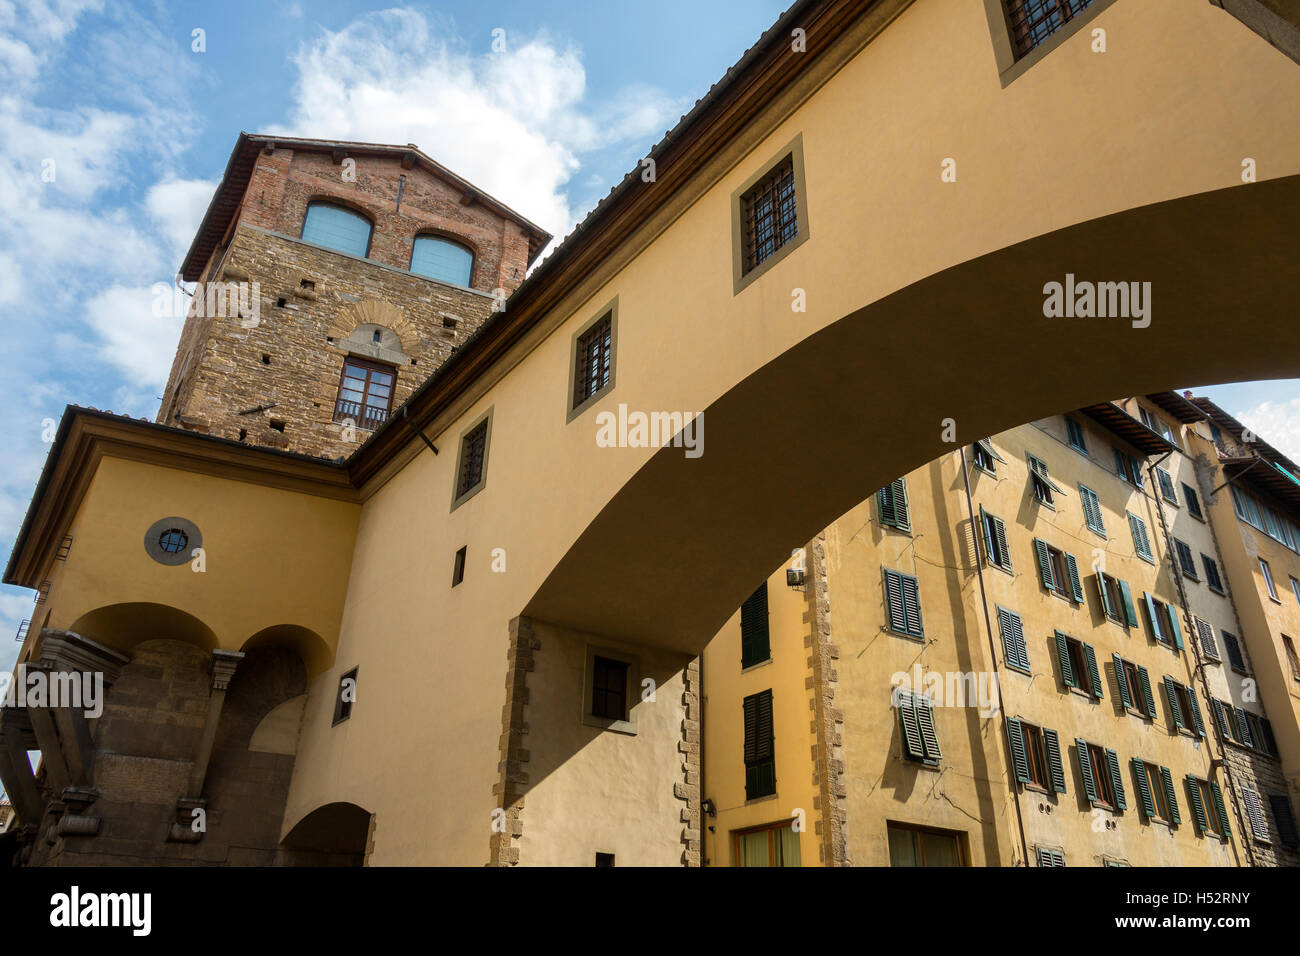 Florence, Italy - Archway at the south end of the Ponte Vecchio at the end of Via de Guicciardini. - Stock Image